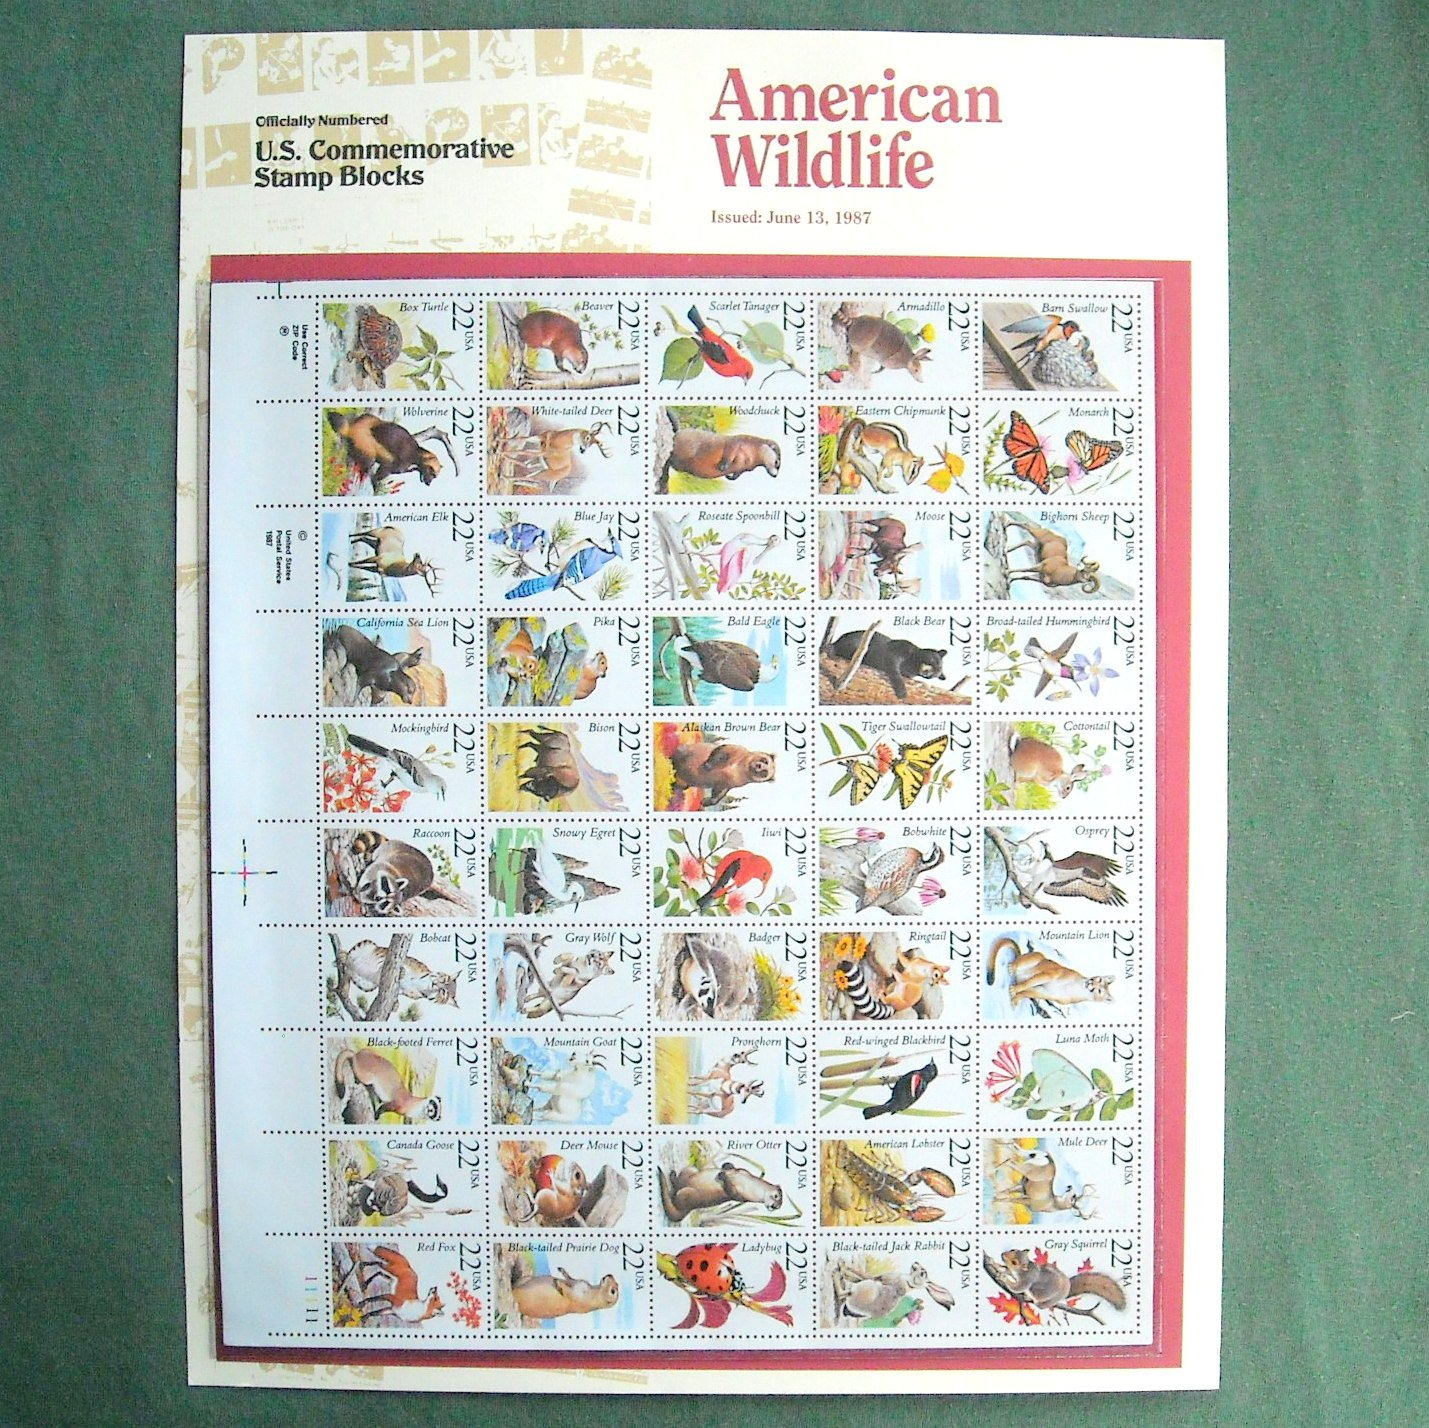 American Wildlife Officially Numbered Full Sheet 22c Stamps